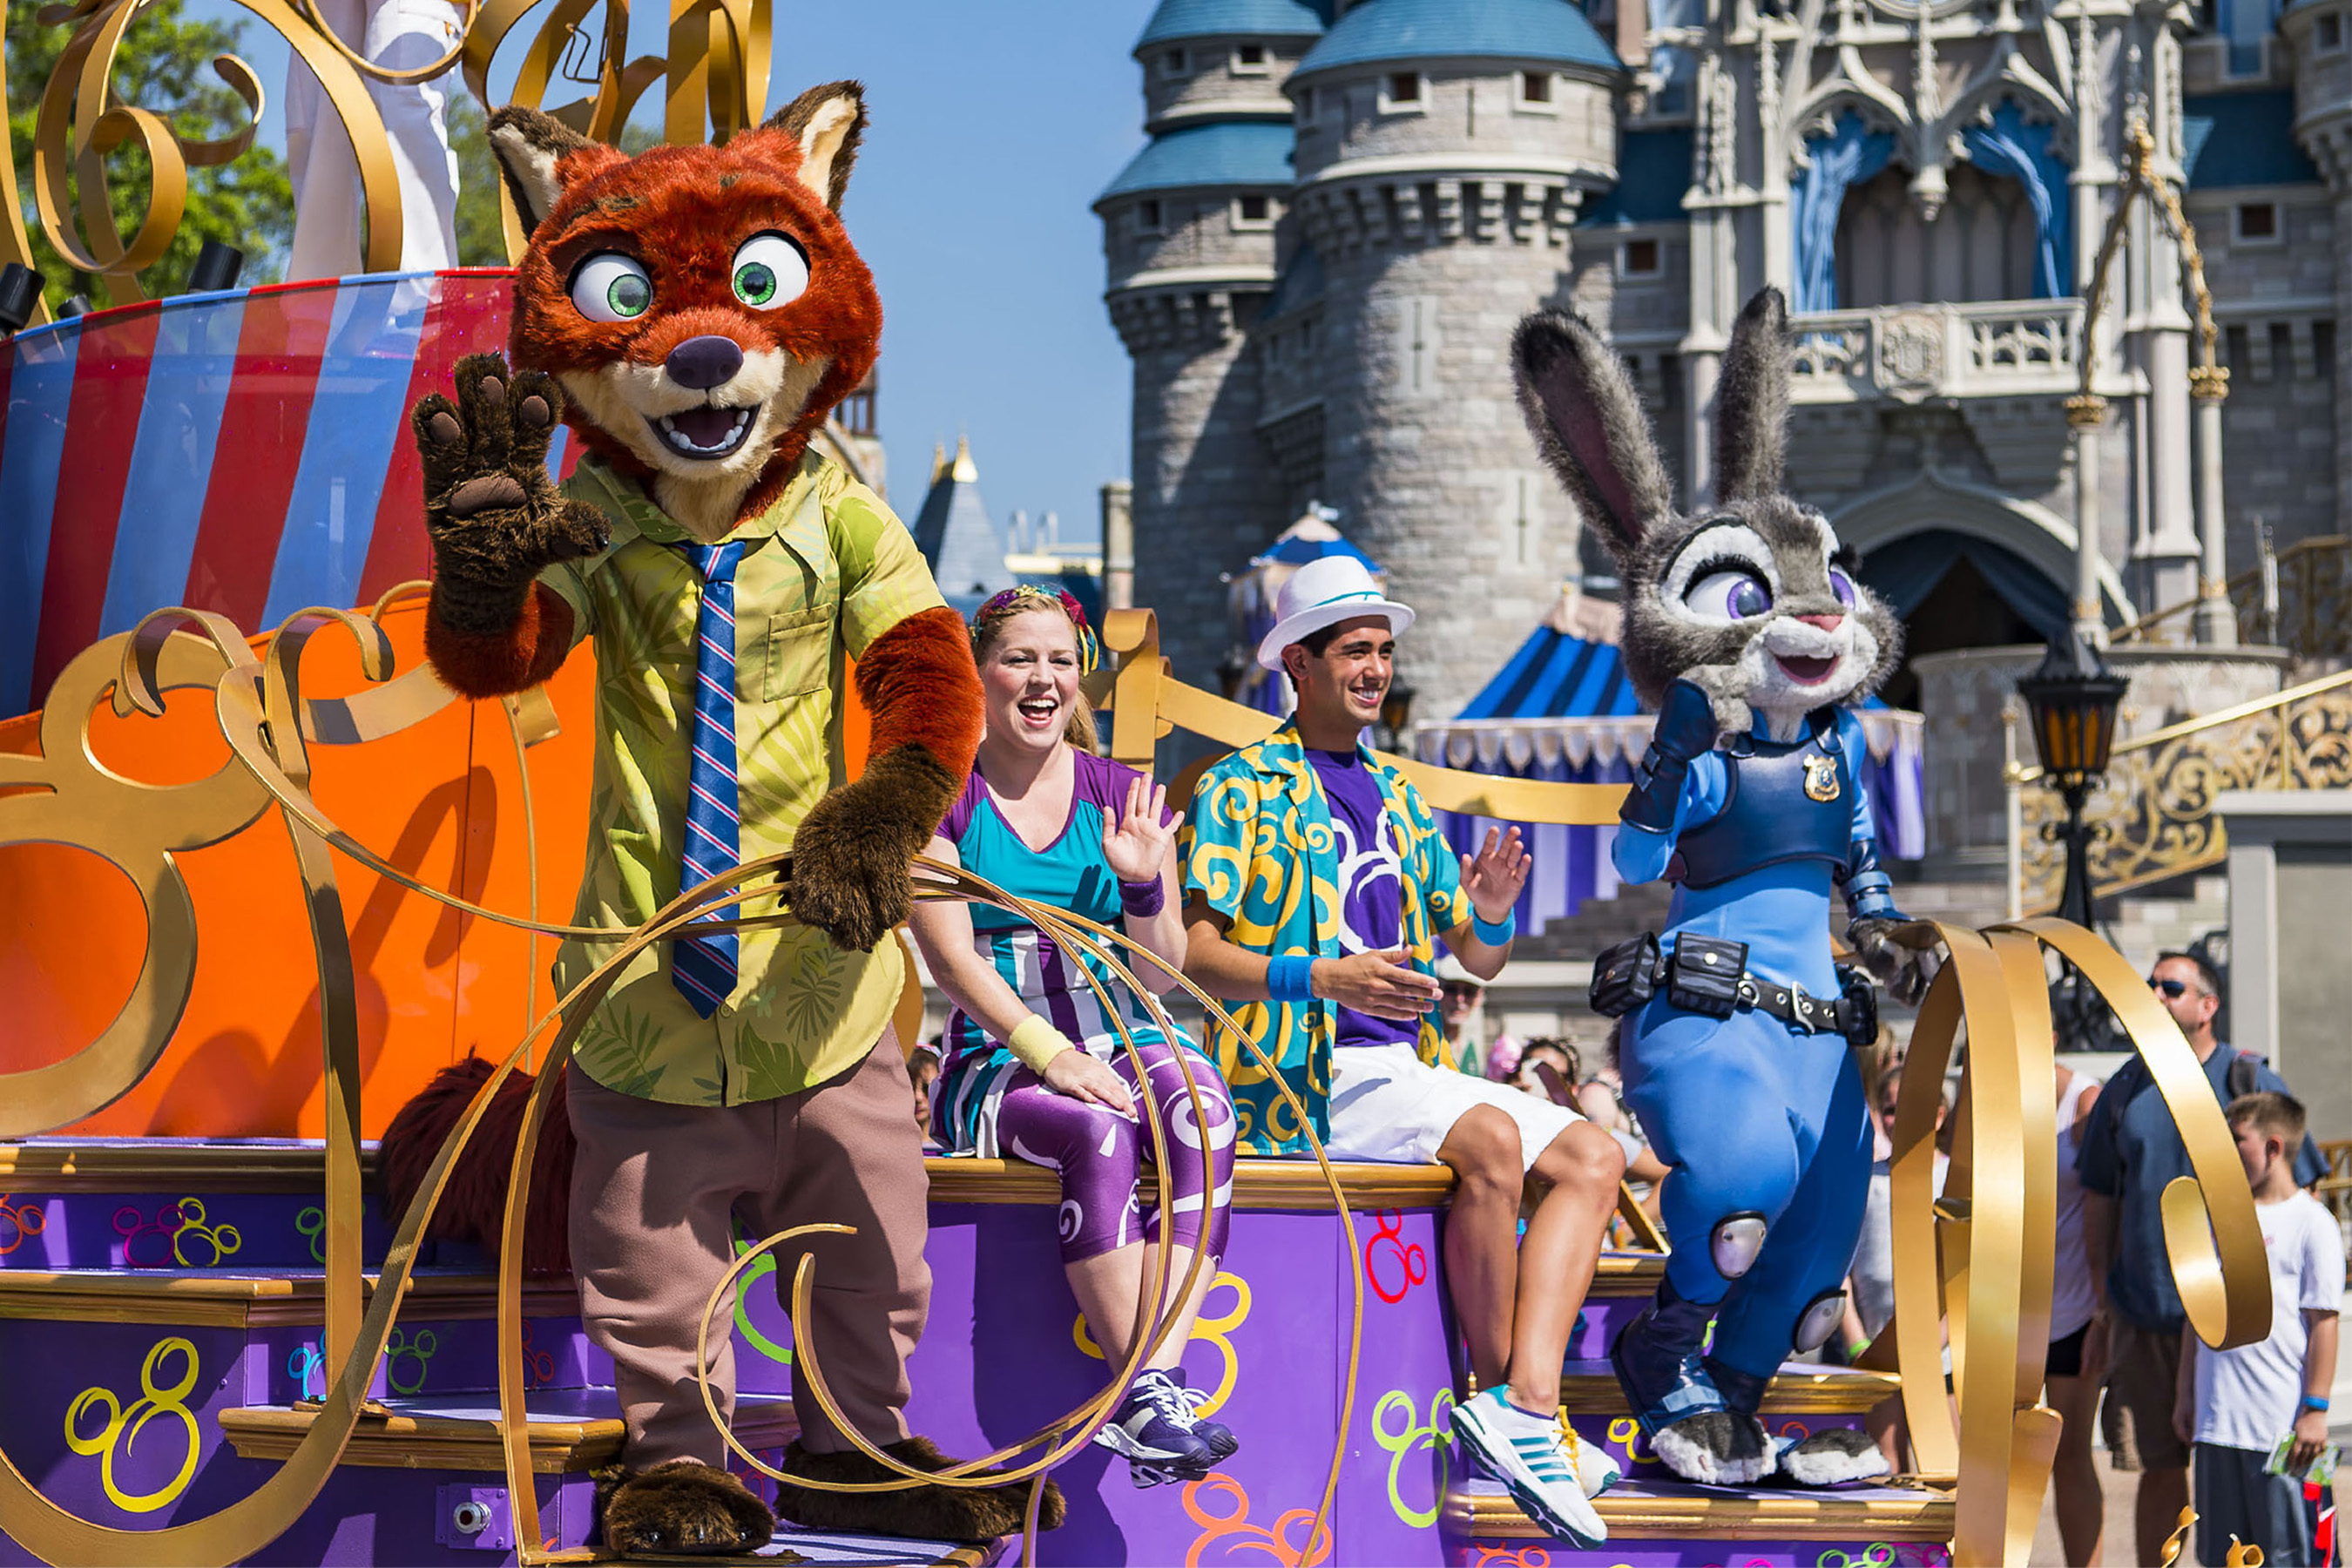 New disney character meet n greets being added in parks nick wilde and judy hopps from walt disney animation studios zootopia are now a part of m4hsunfo